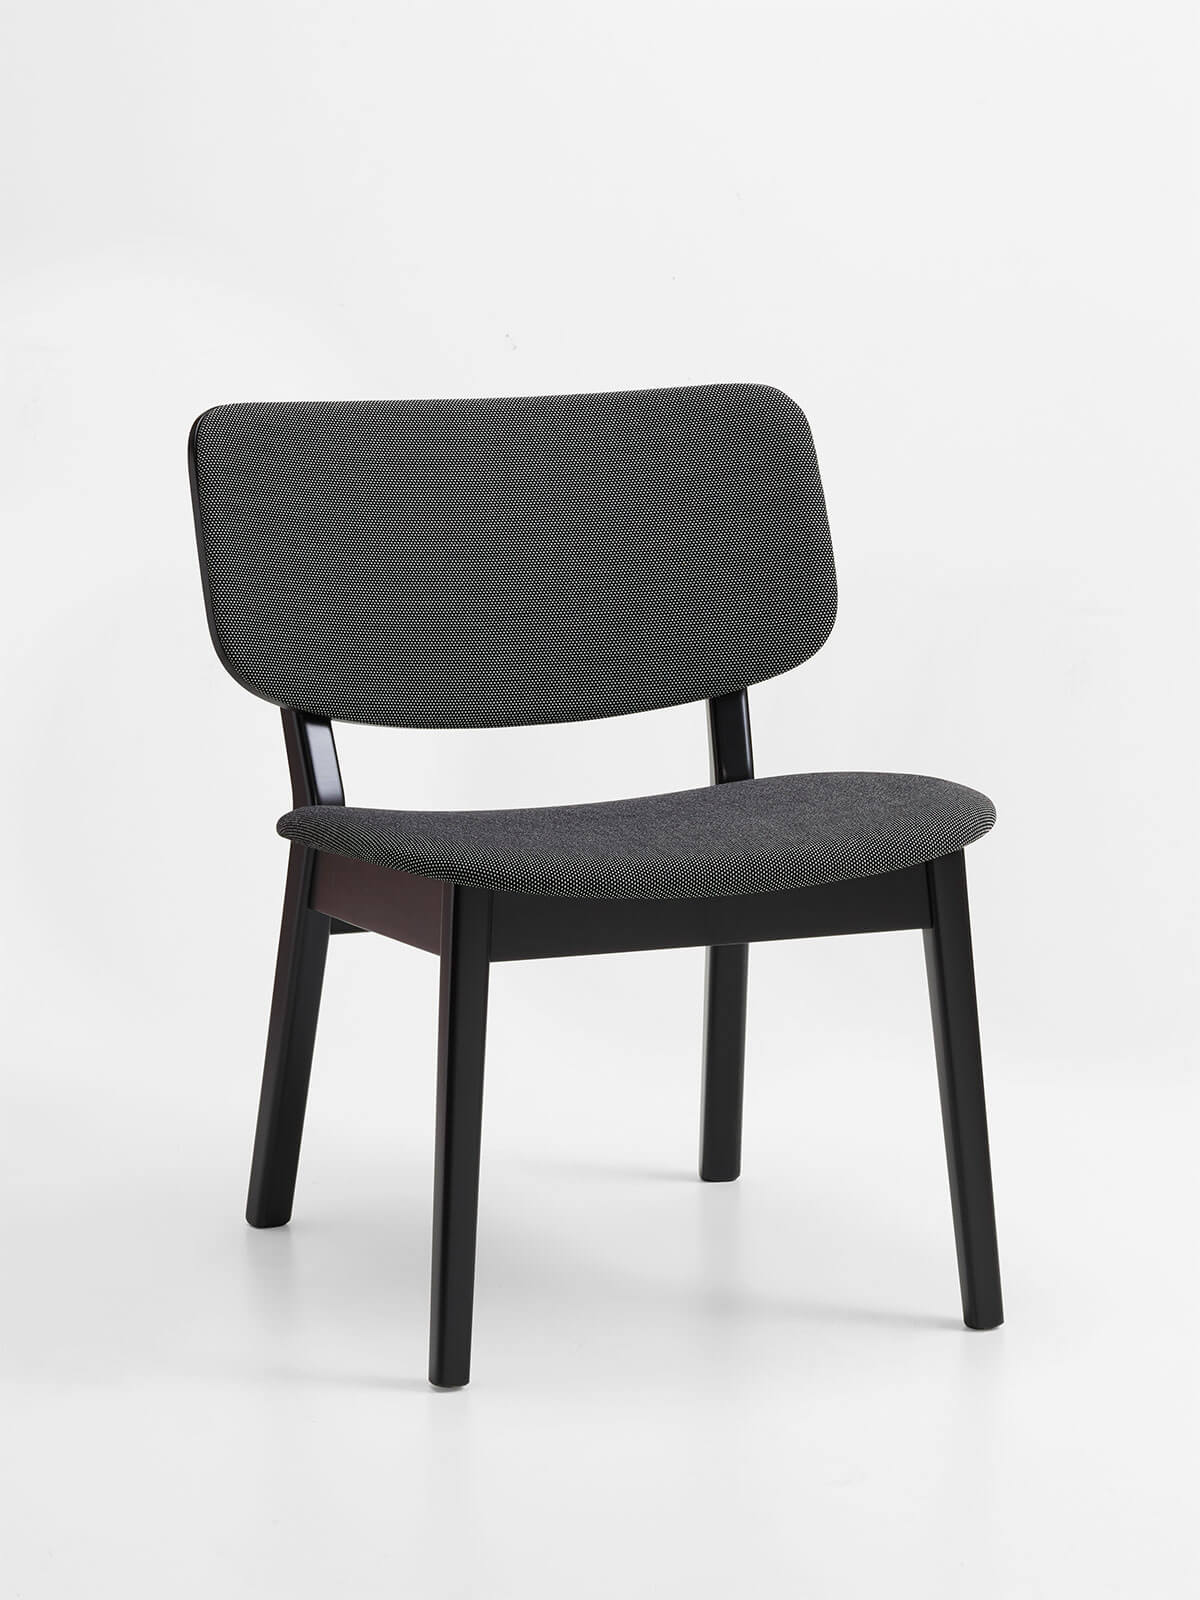 Celine Lounge Chair-Cantarutti-Contract Furniture Store